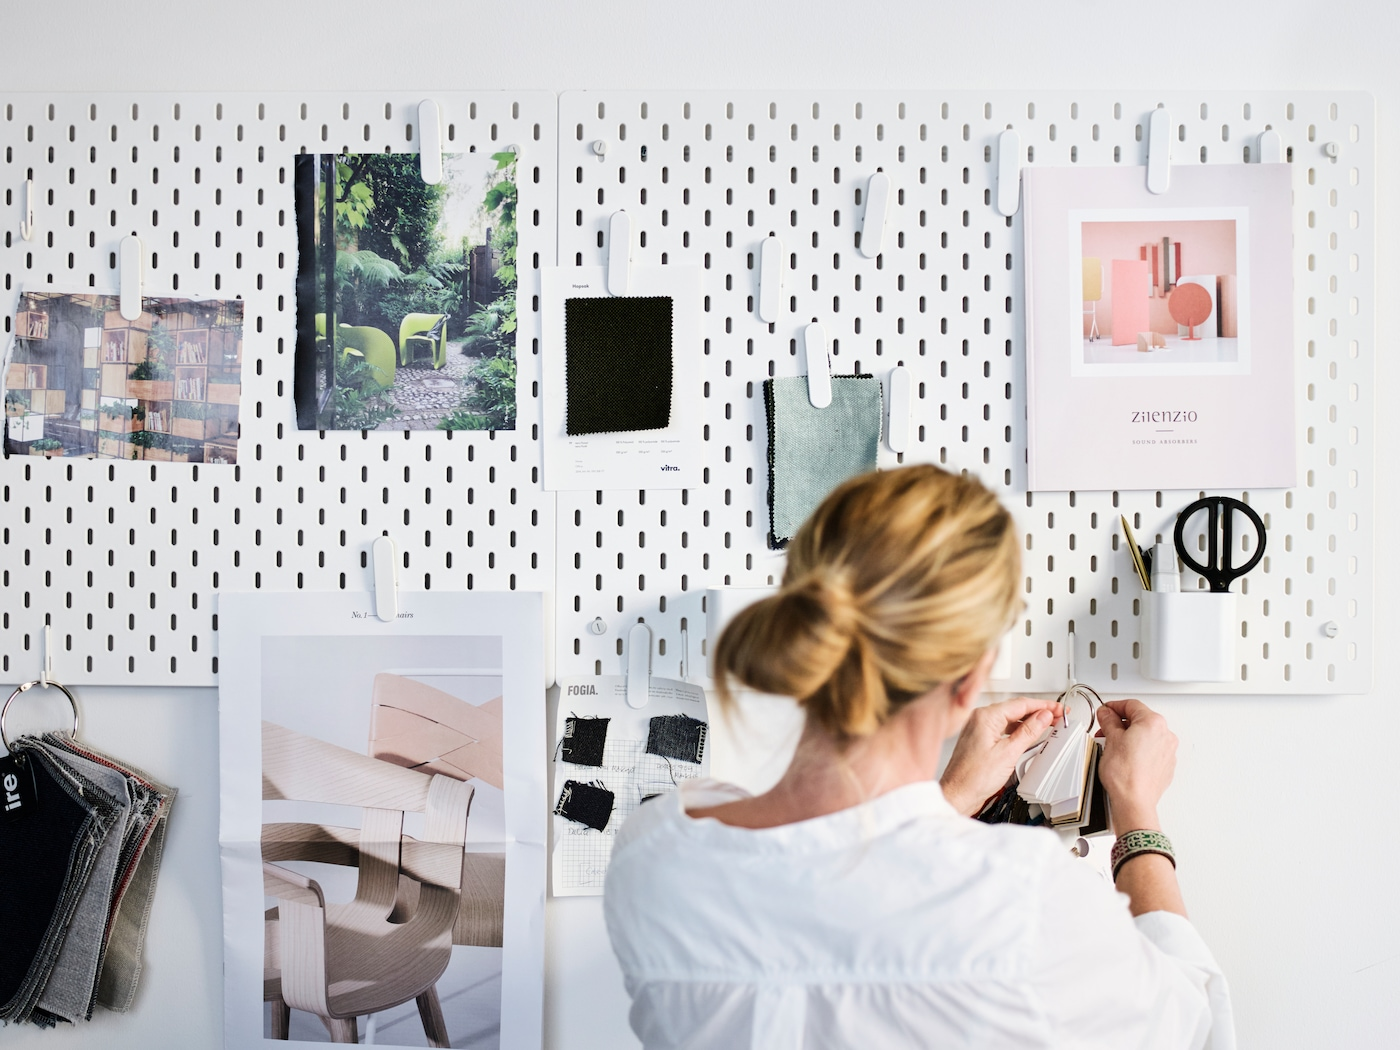 A woman in a white shirt arranging pictures on the board.